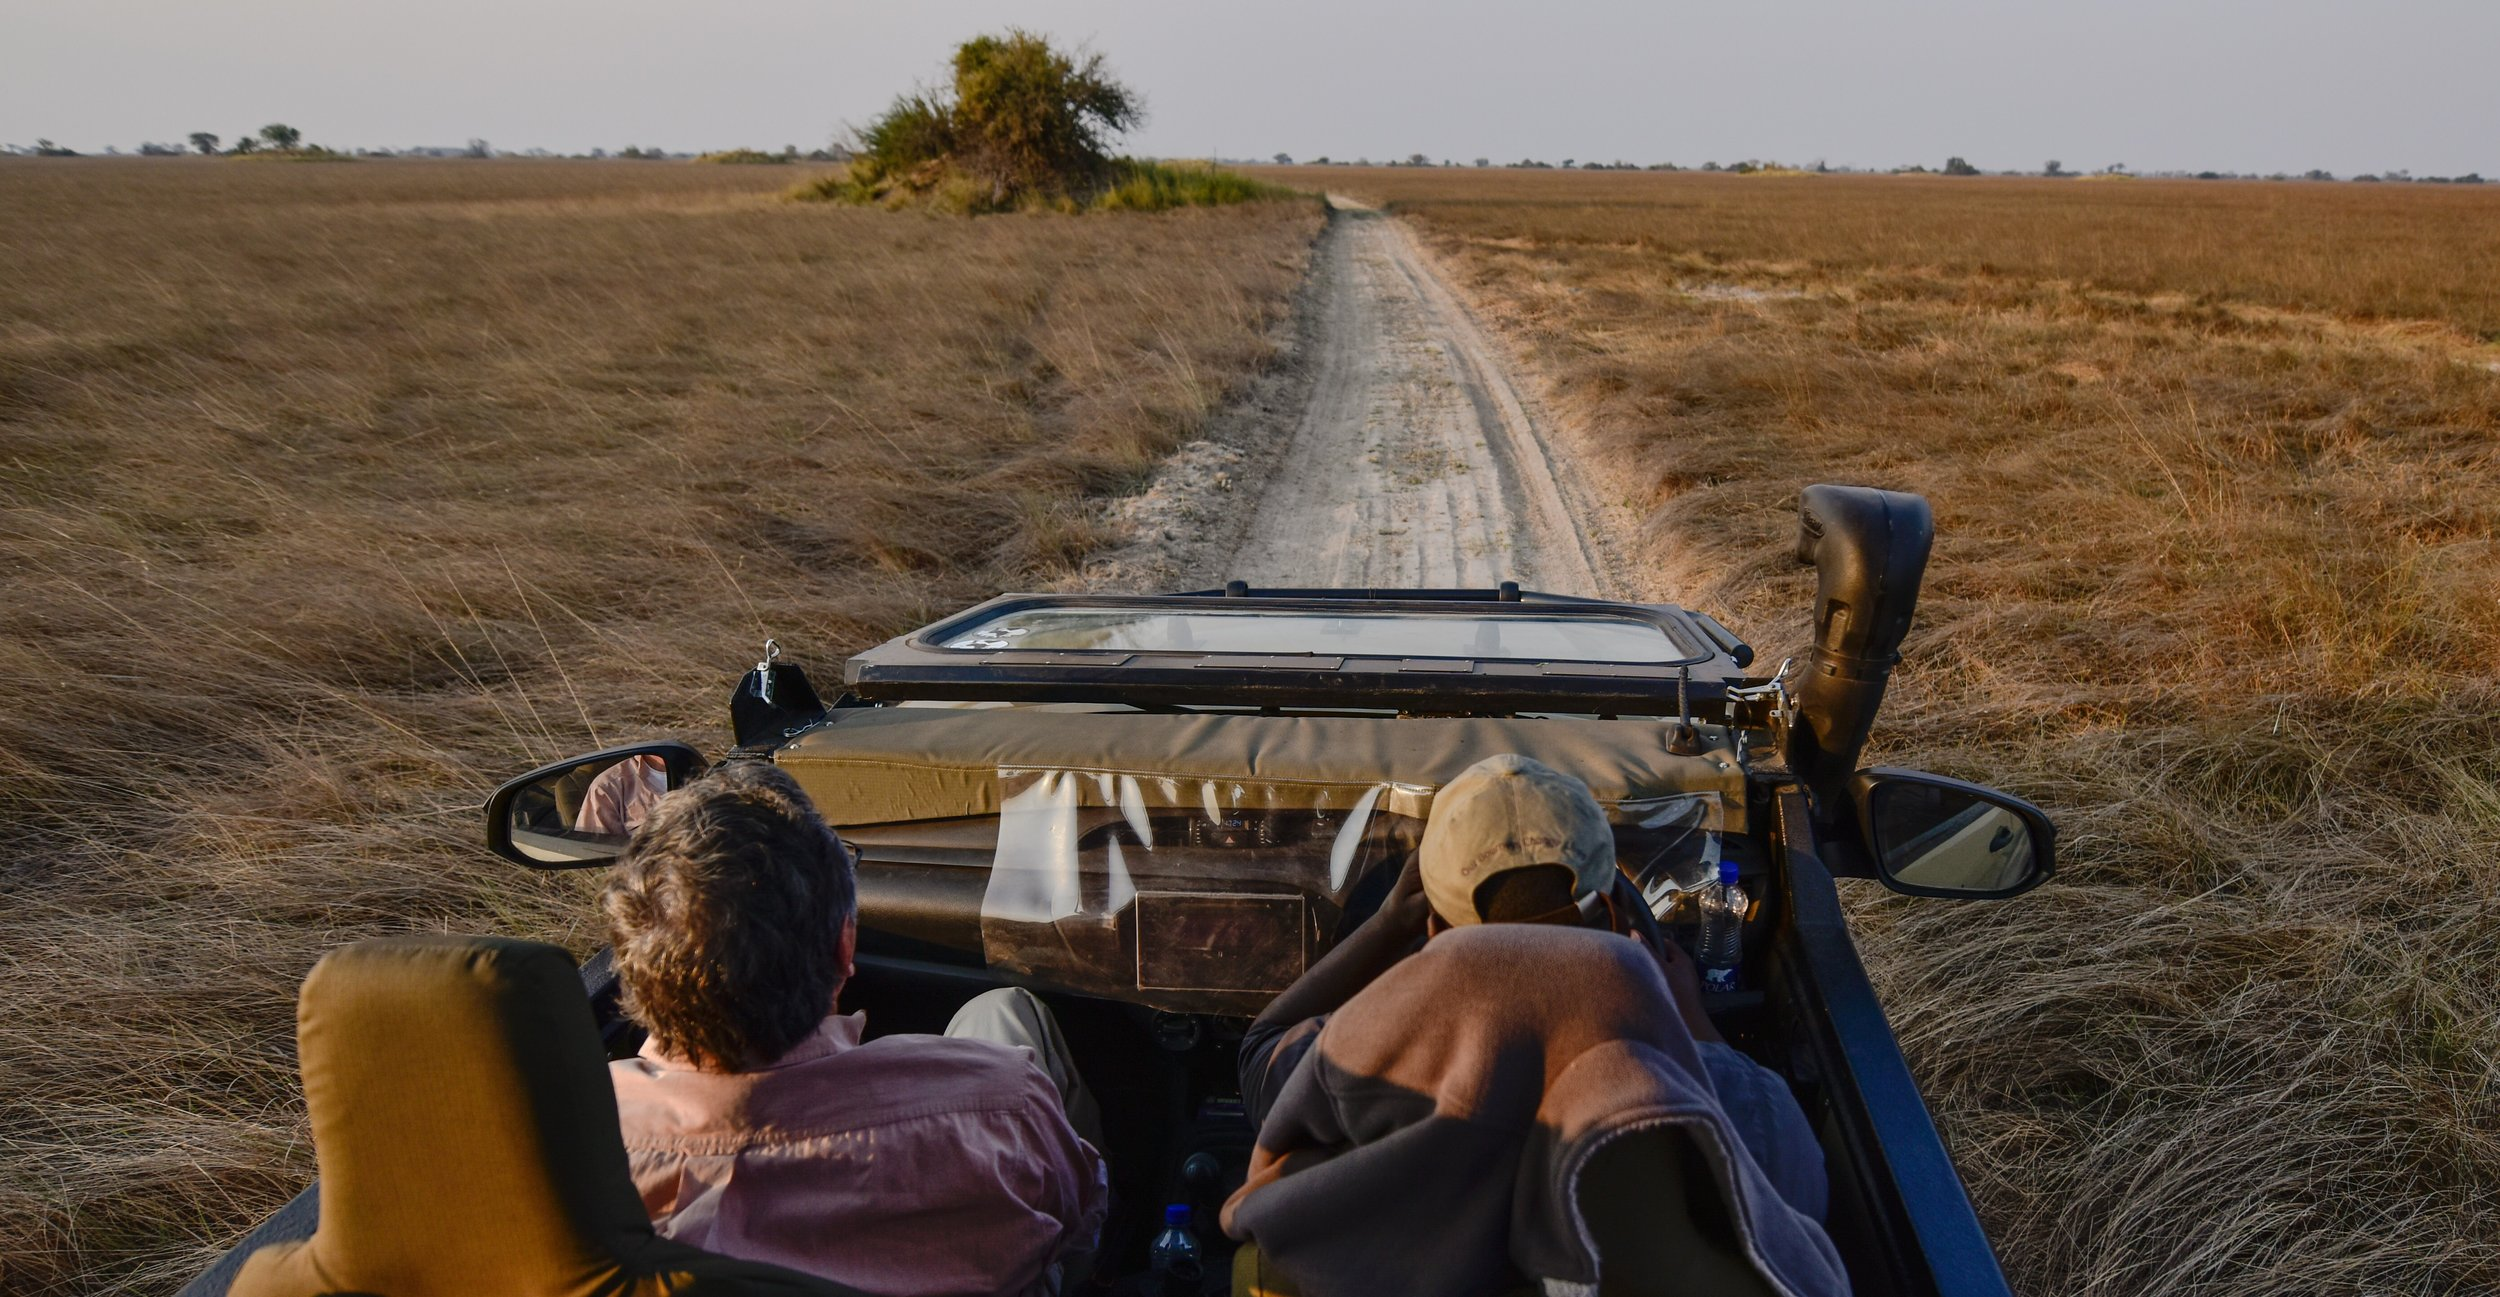 The buggy ride with Bill as navigator. I left out the part where we swatted away the tsetse flies. Painful little buggers...